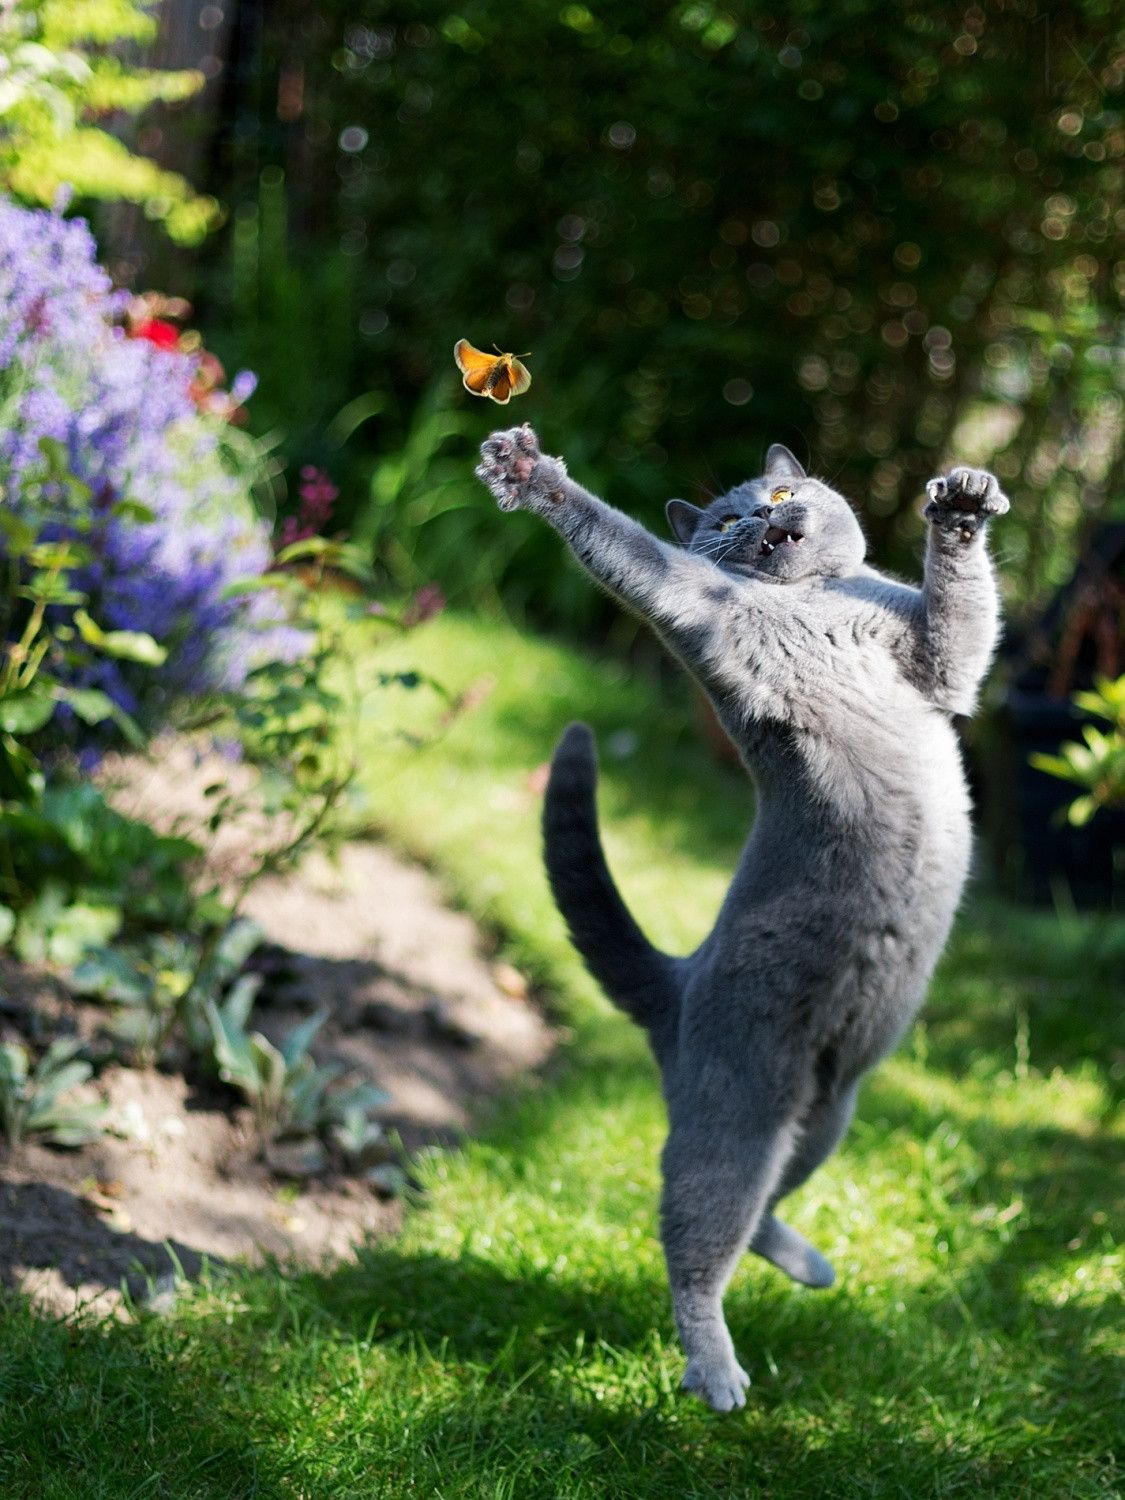 Cat reaching for butterfly......NO - NO  I AM NOT TRYING TO CATCH IT......I'M JUST STRETCHING MY FRAME......THEY TAUGHT THIS EXERCISE IN CLASS!! ...(HEE HEE---WONDER IF SHE BELIEVES ME?????)......ccp